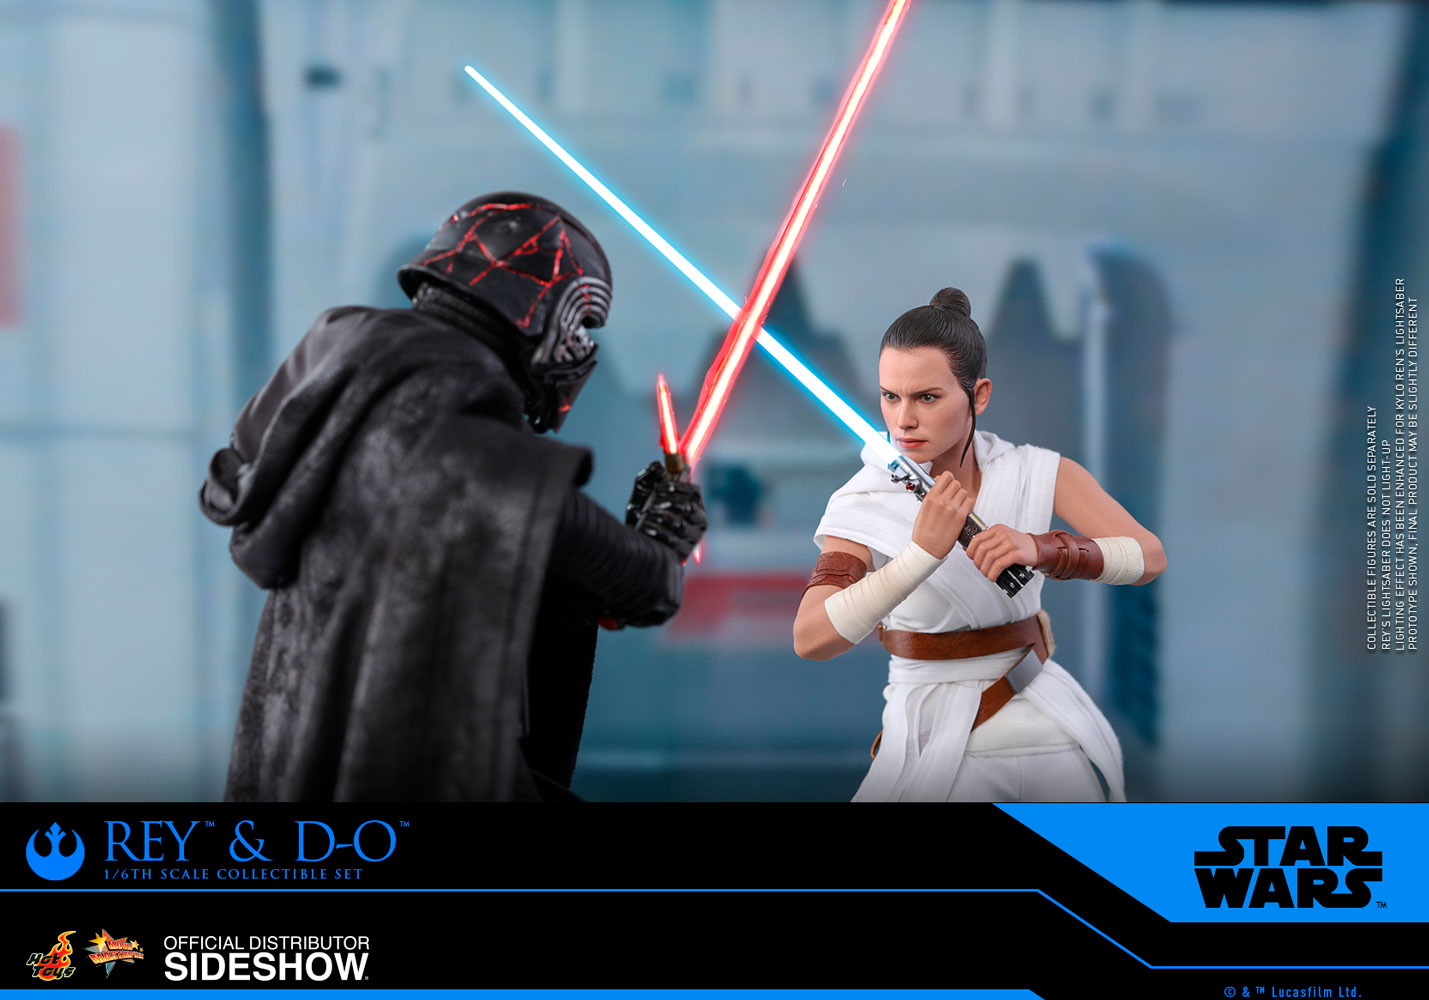 Rey and D-O